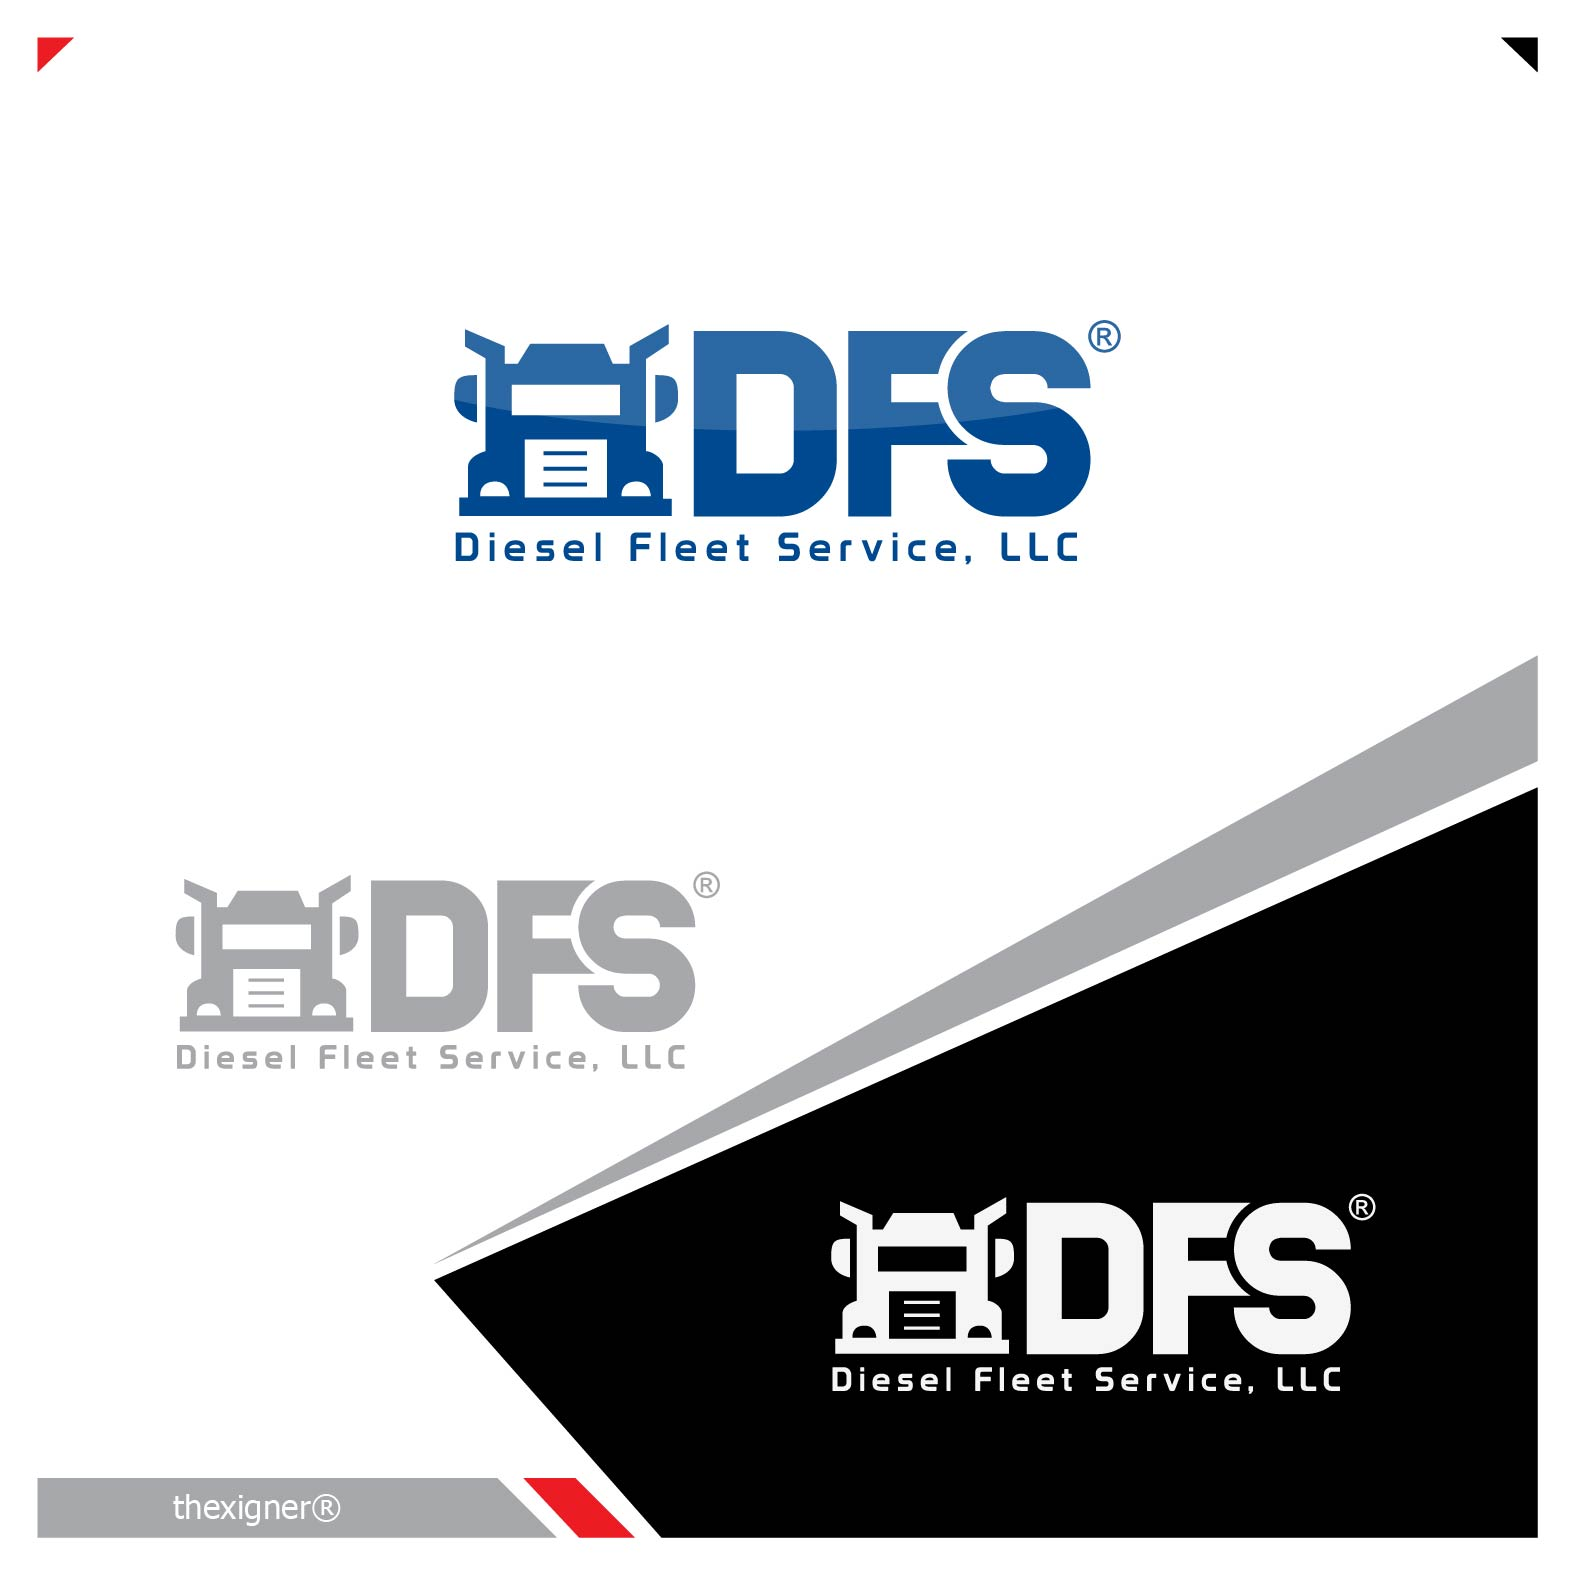 Logo Design by lagalag - Entry No. 71 in the Logo Design Contest Artistic Logo Design for Diesel Fleet Service, LLC.